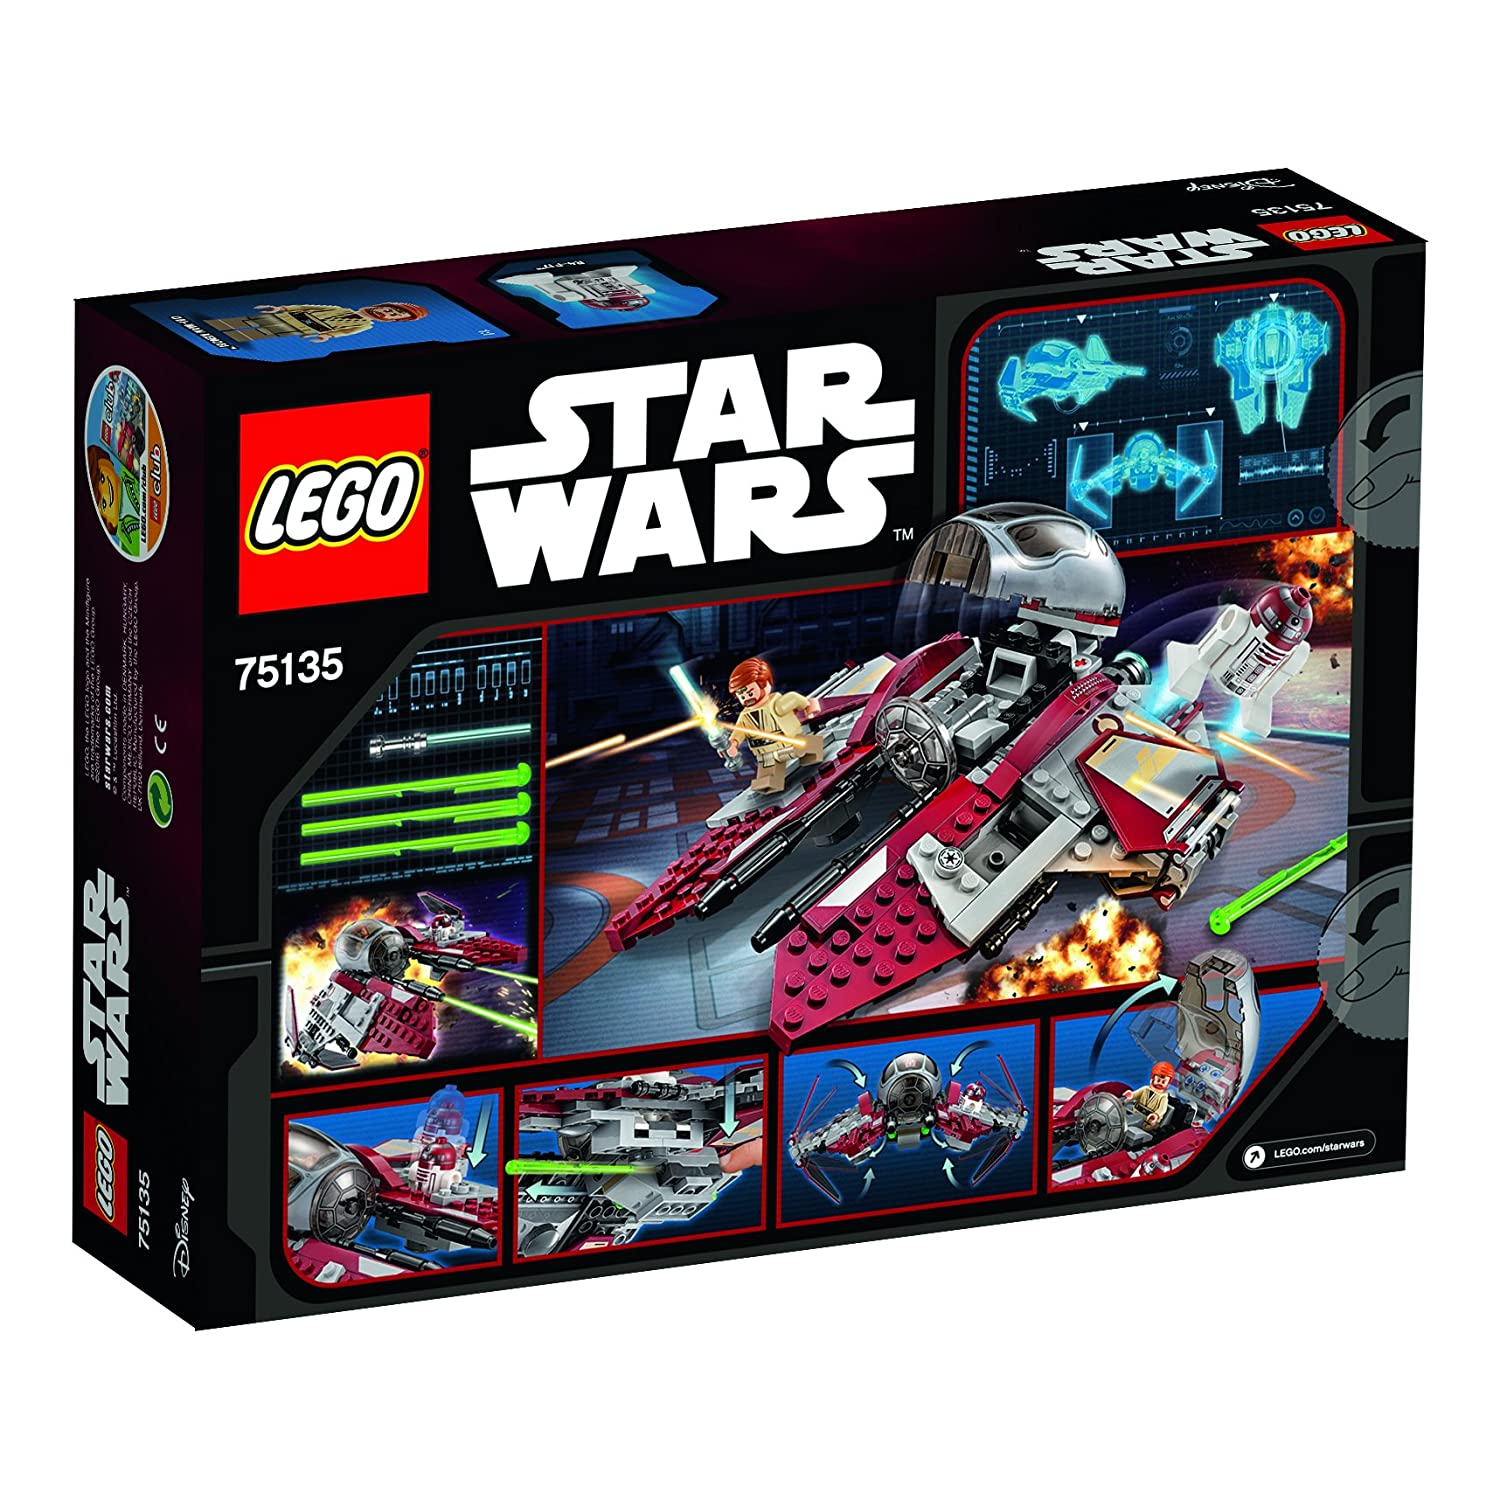 Lego star wars 75135 intercepter dobi wans jedi amazon fr jeux et jouets